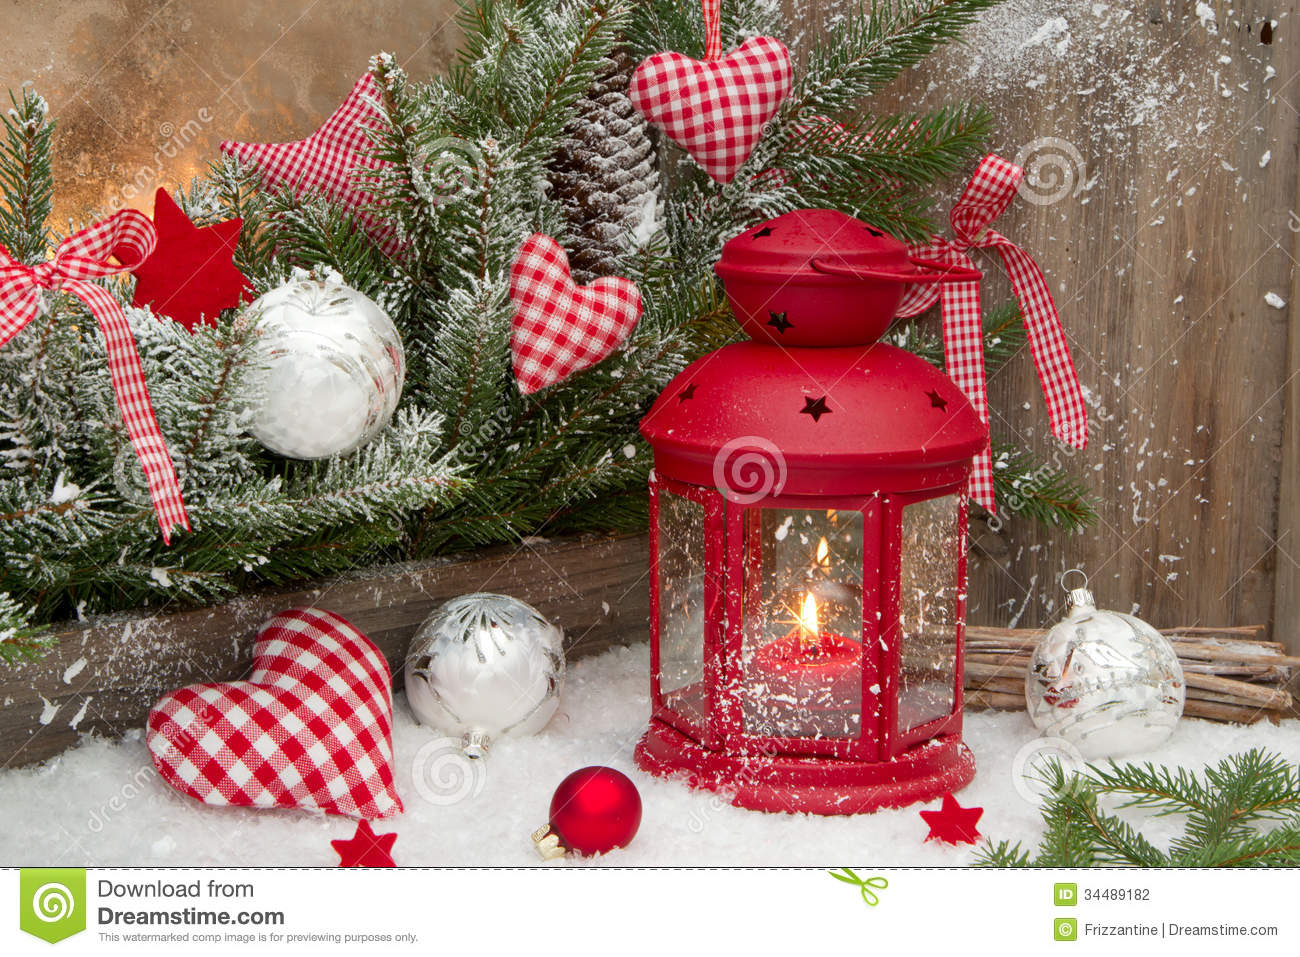 red lantern with candlelights an checked heards for a christmas stock photo image 34489182. Black Bedroom Furniture Sets. Home Design Ideas